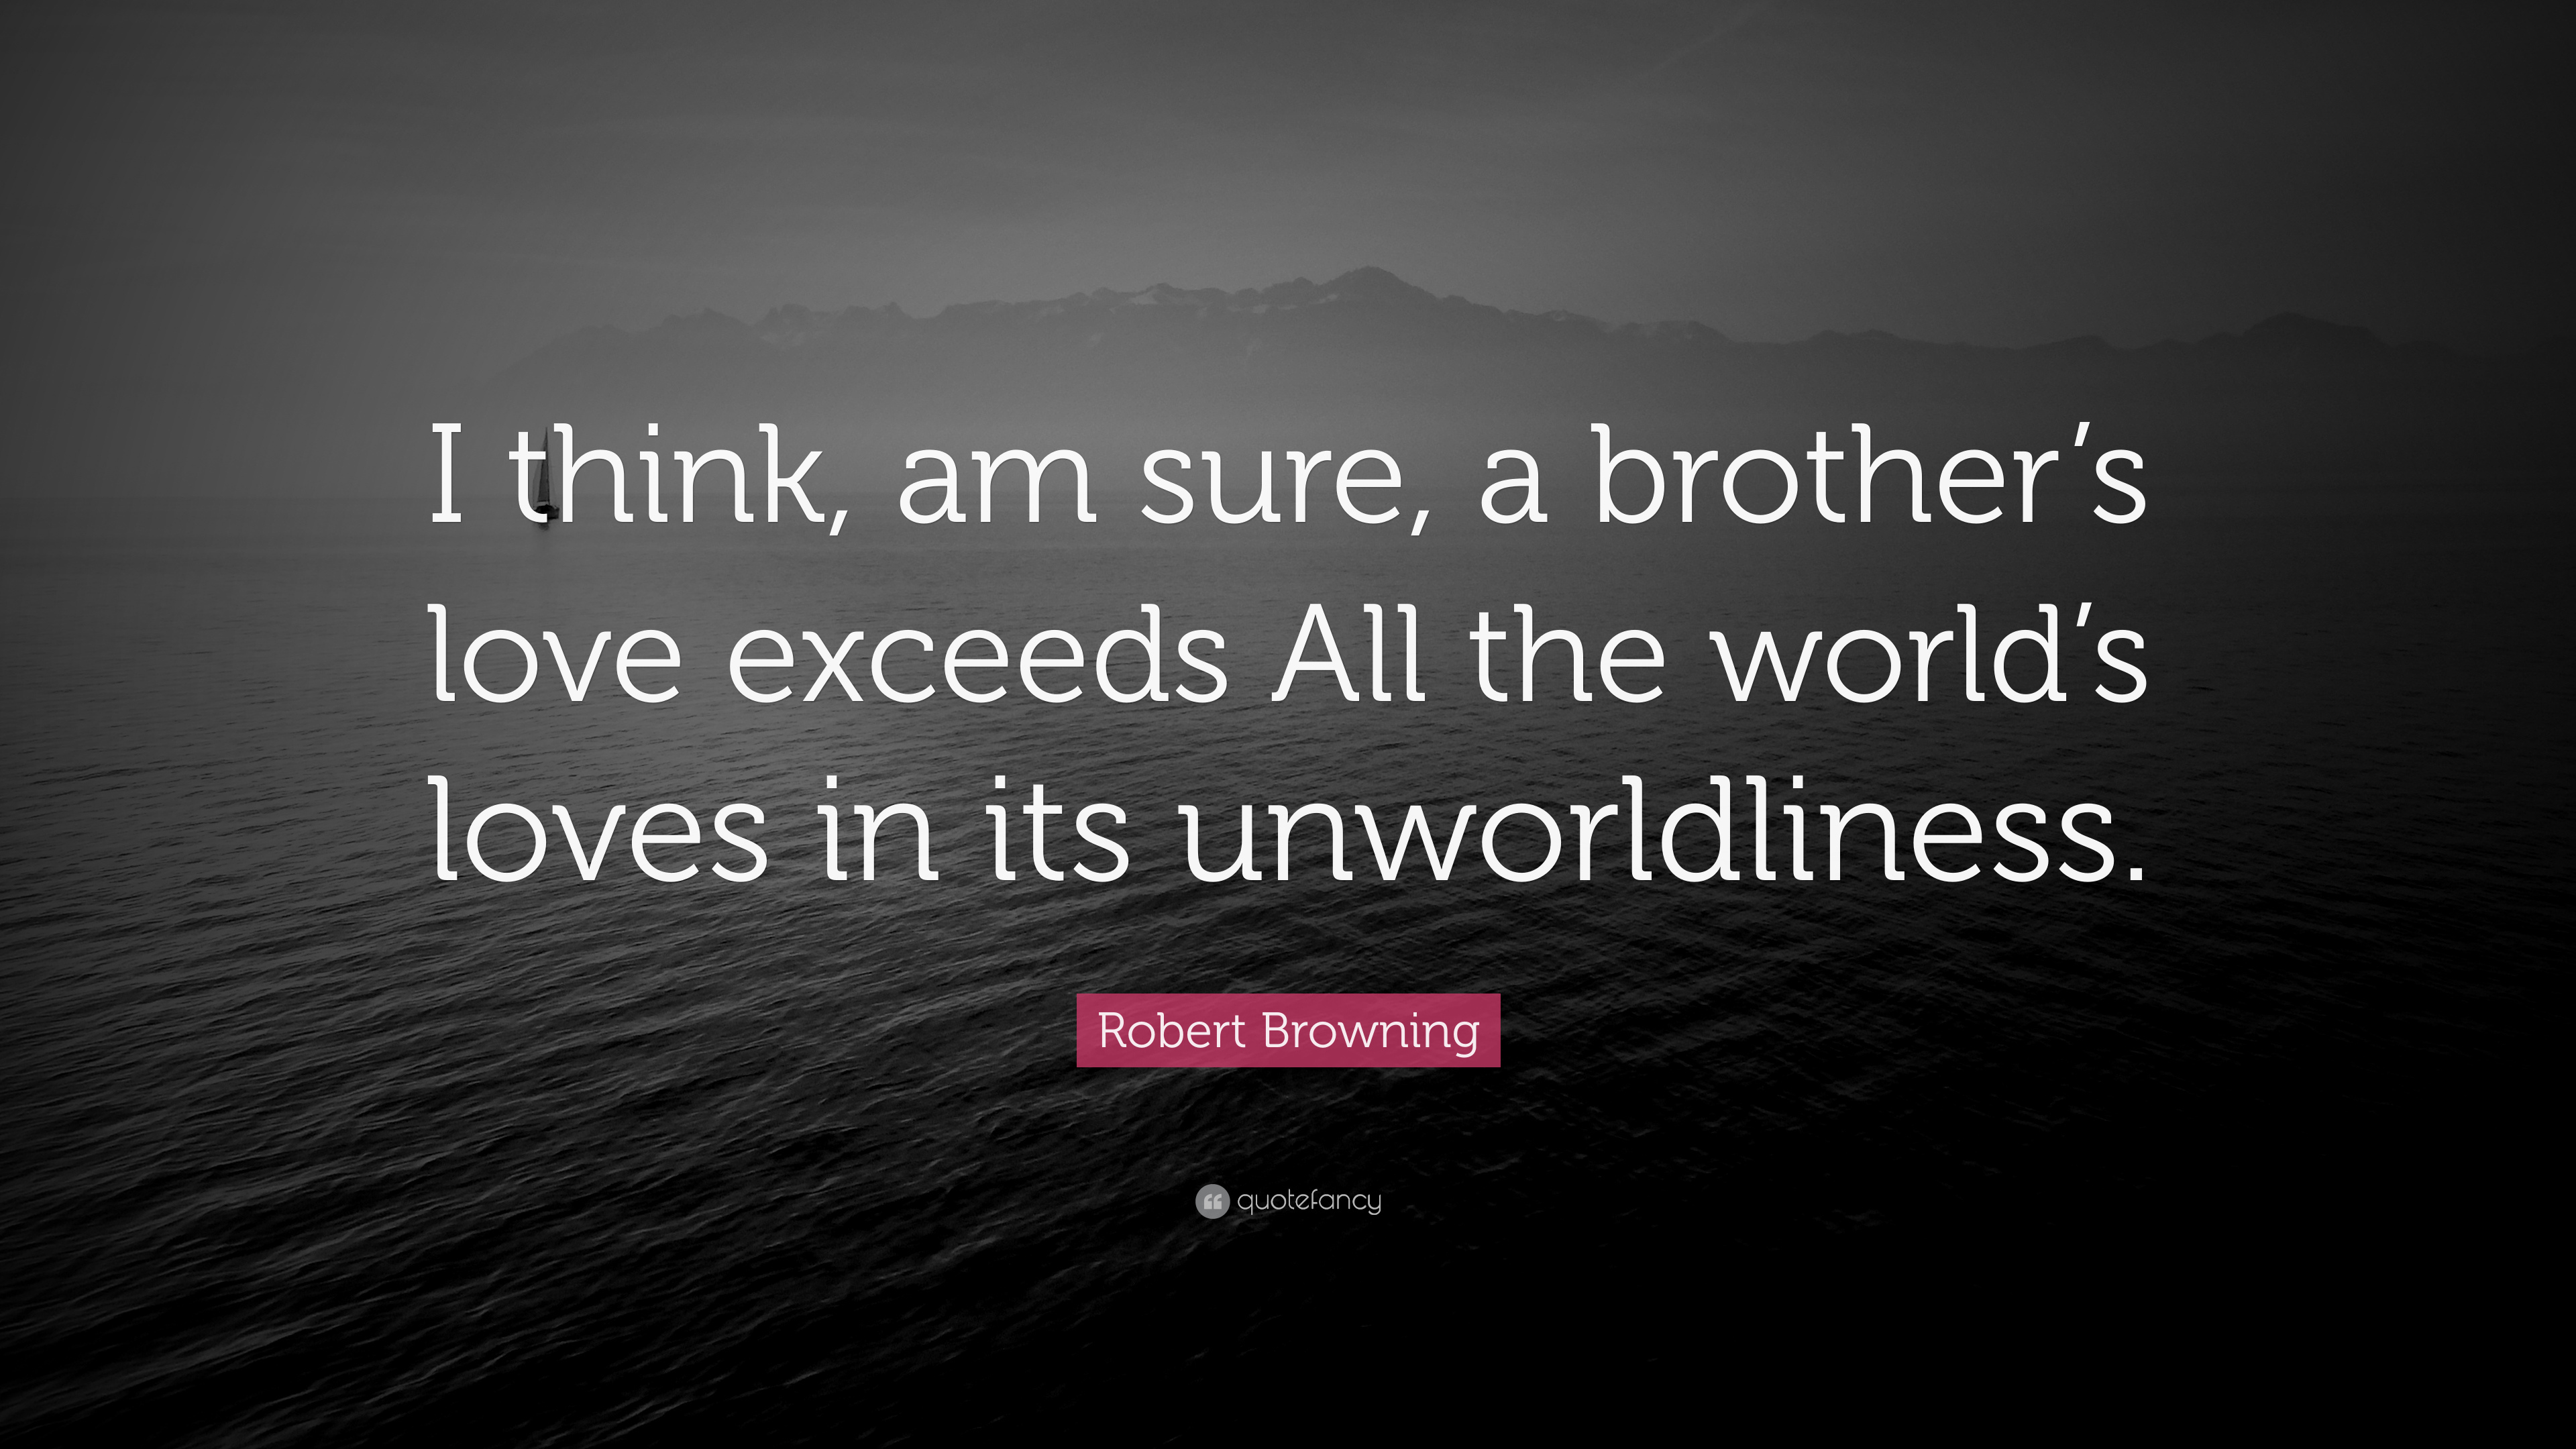 Robert Browning Quote I Think Am Sure A Brother S Love Exceeds All The World S Loves In Its Unworldliness 9 Wallpapers Quotefancy